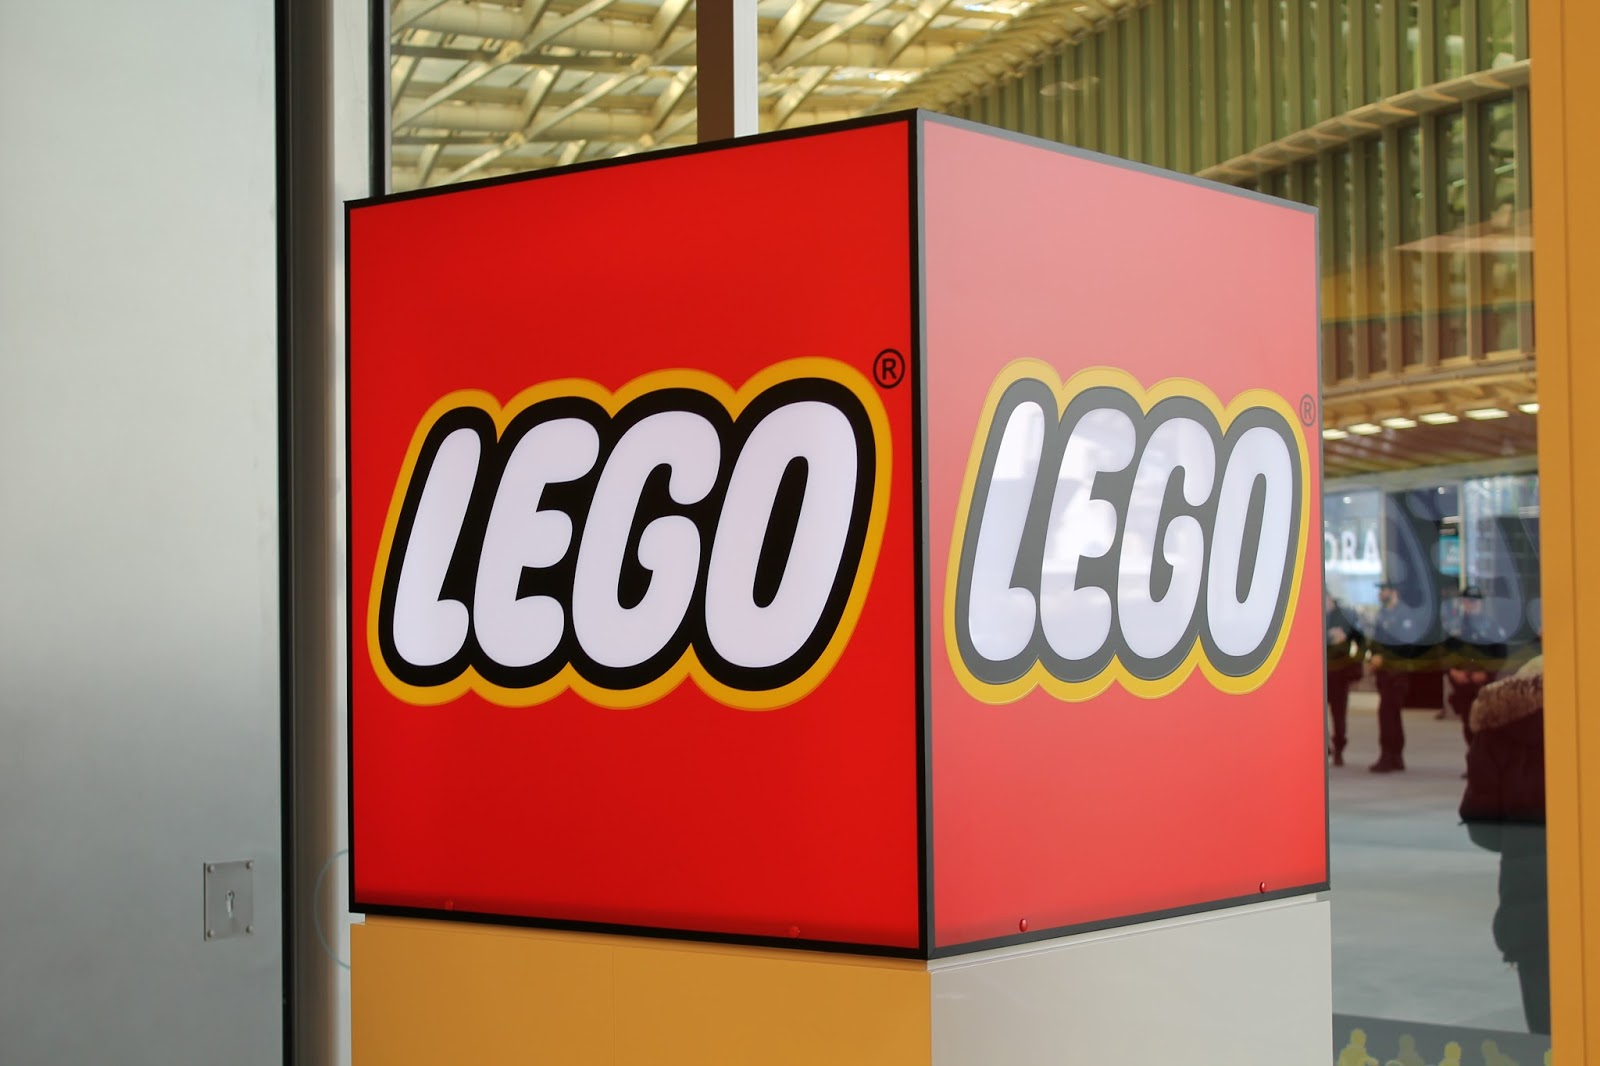 lego legostore legostoreparis store boutique ouverture evenement paris les halles forum canopee chatelet brique inauguration avril 2016